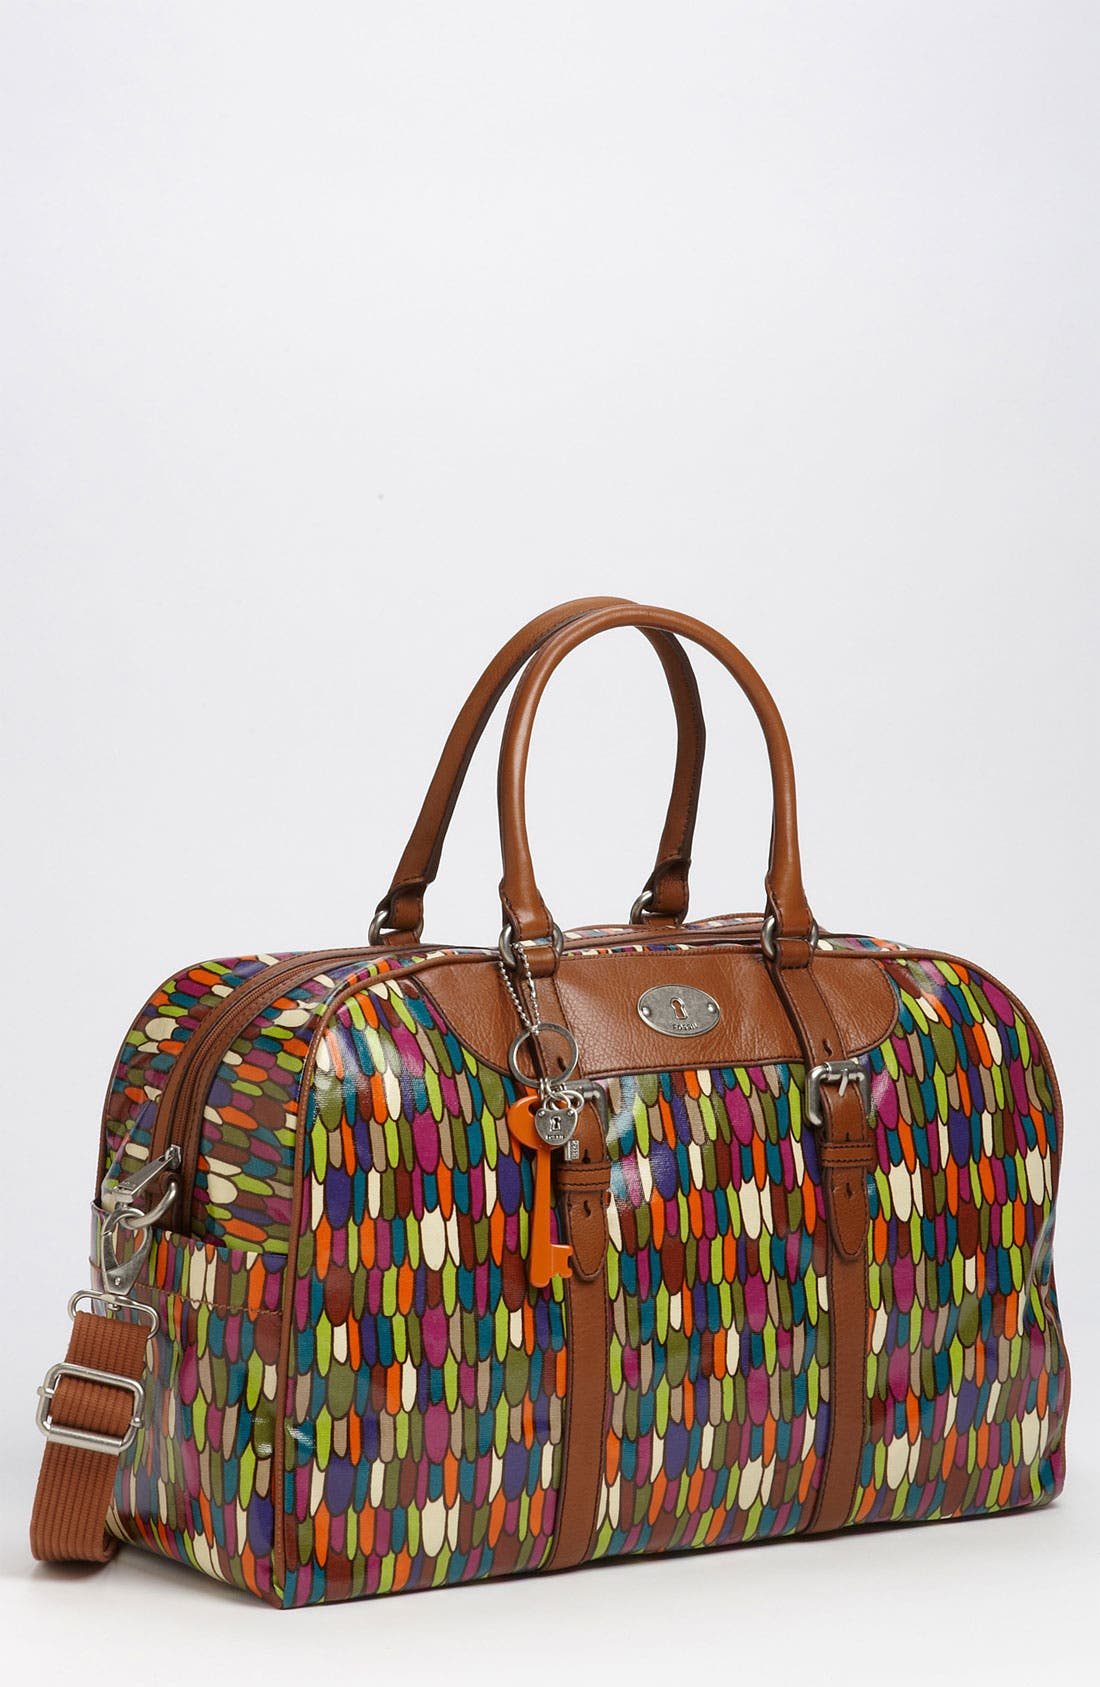 Alternate Image 1 Selected - Fossil 'Vintage Key-Per' Coated Canvas Duffel Bag